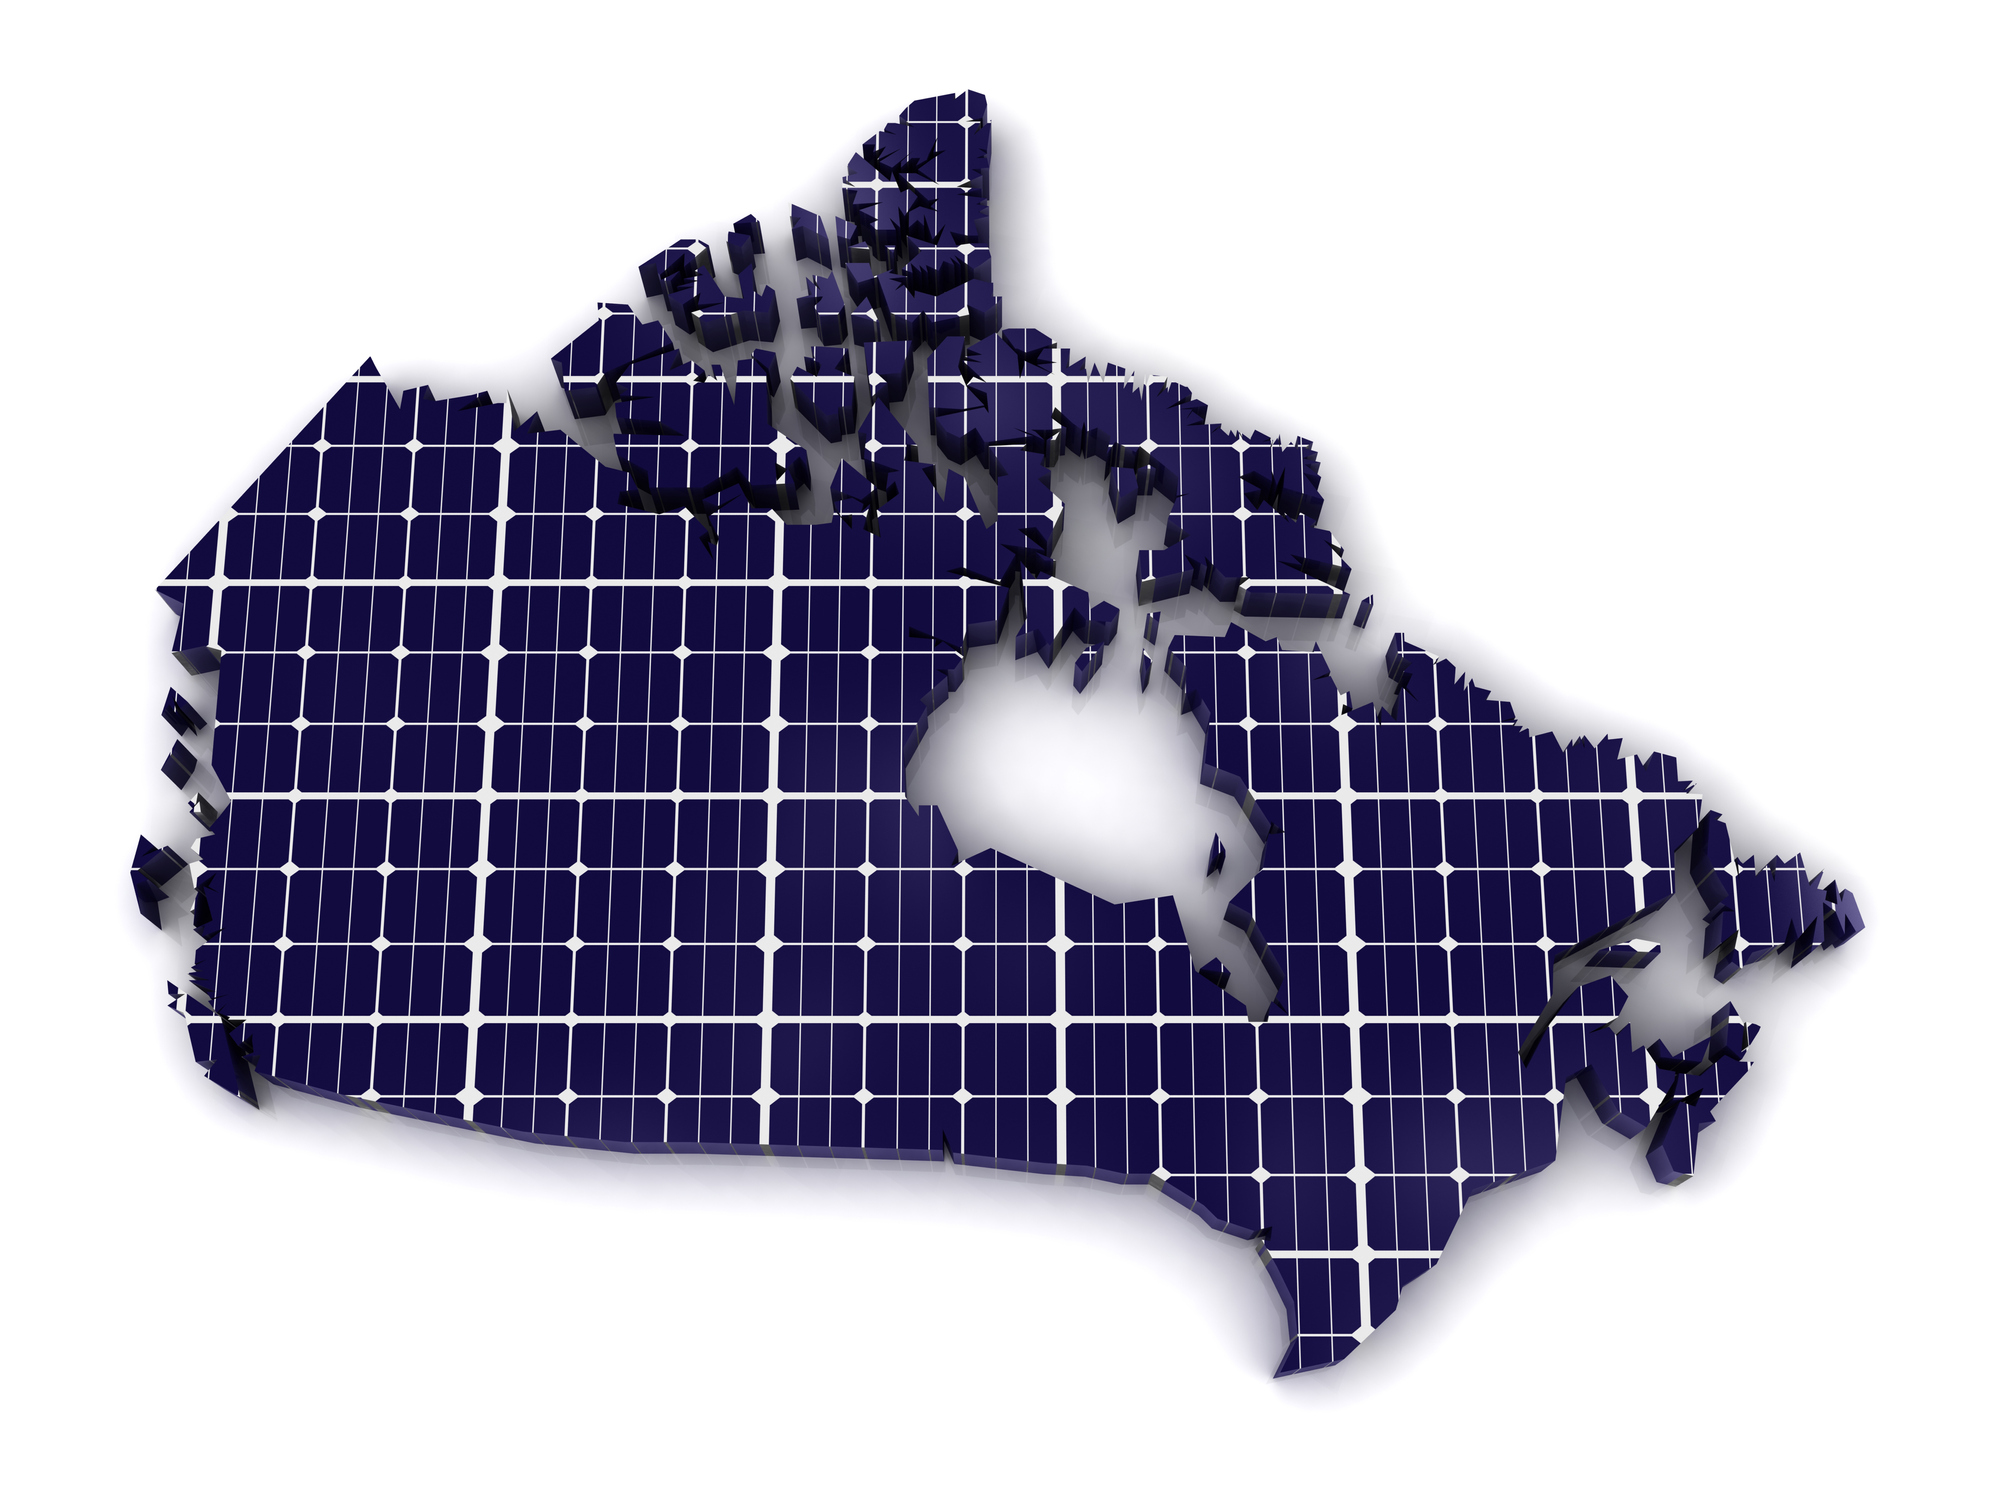 A geographical outline of Canada represented as a large solar PV panel.